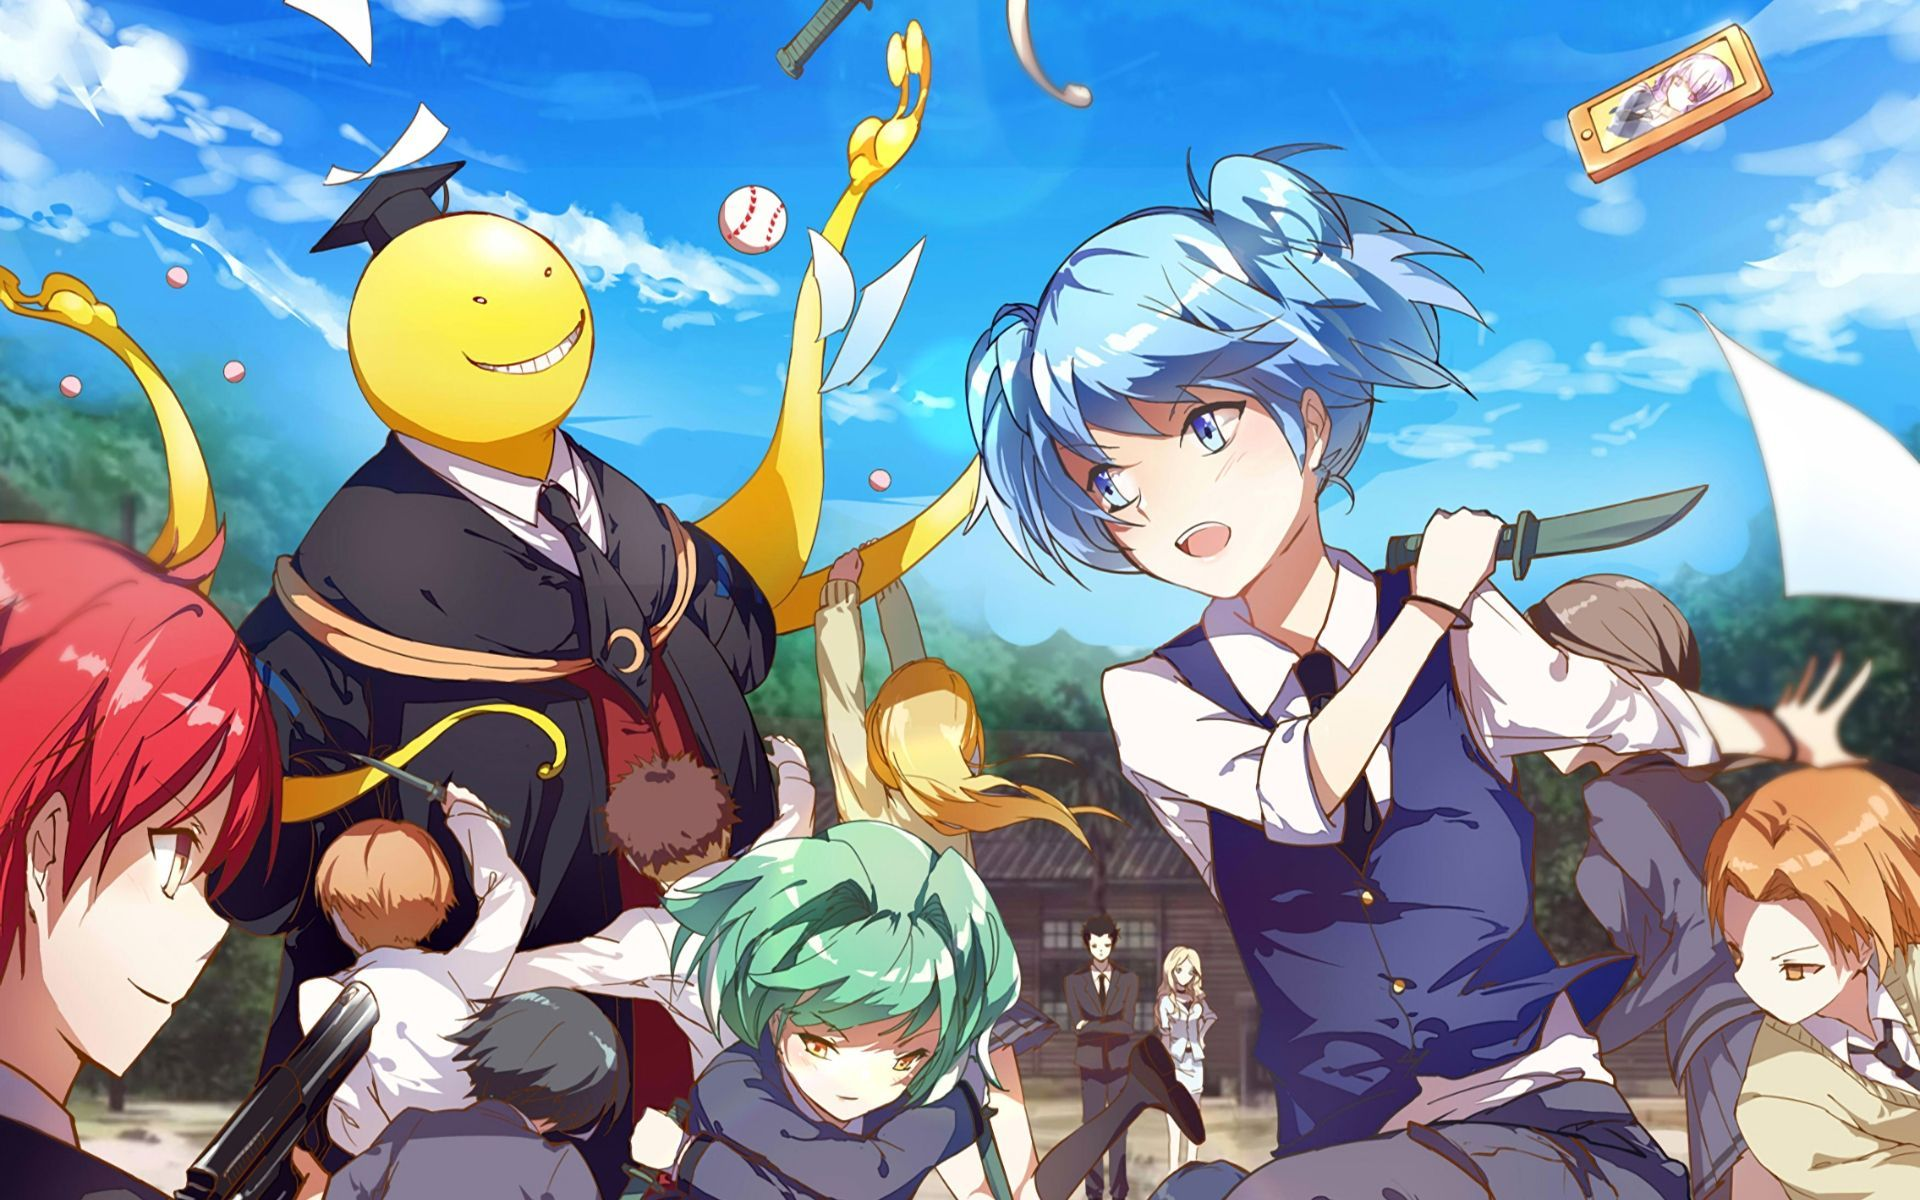 Anime Wallpapers Classroom Pictures Anime Assasination Classroom